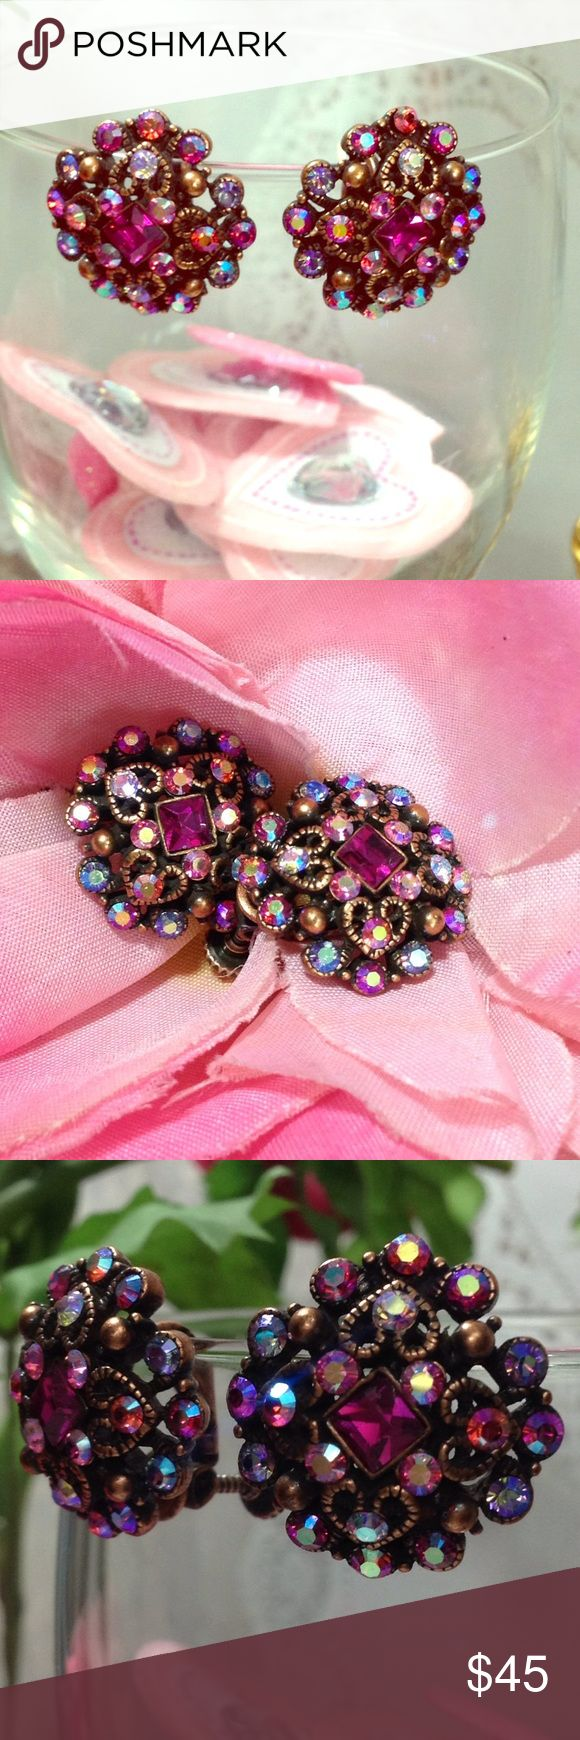 """Joan River💞Pink Cluster💞Screw Back Earrings How Gorgeous are these really?!? I almost don't even want to part with them they are so so """"GORG"""" Perfect for Prom, Beauty Pageant, Brides Maid, Girlfriend, Wife or Yourself!   These earring's are Joan River's personal collection line and are extremely rare! Made up of beautifully stunning Swarovski crystals in every girly shade of sparkly pinks and purples. Each earring is engraved Joan River's! Price is firm!  I'd rather keep them then sell…"""